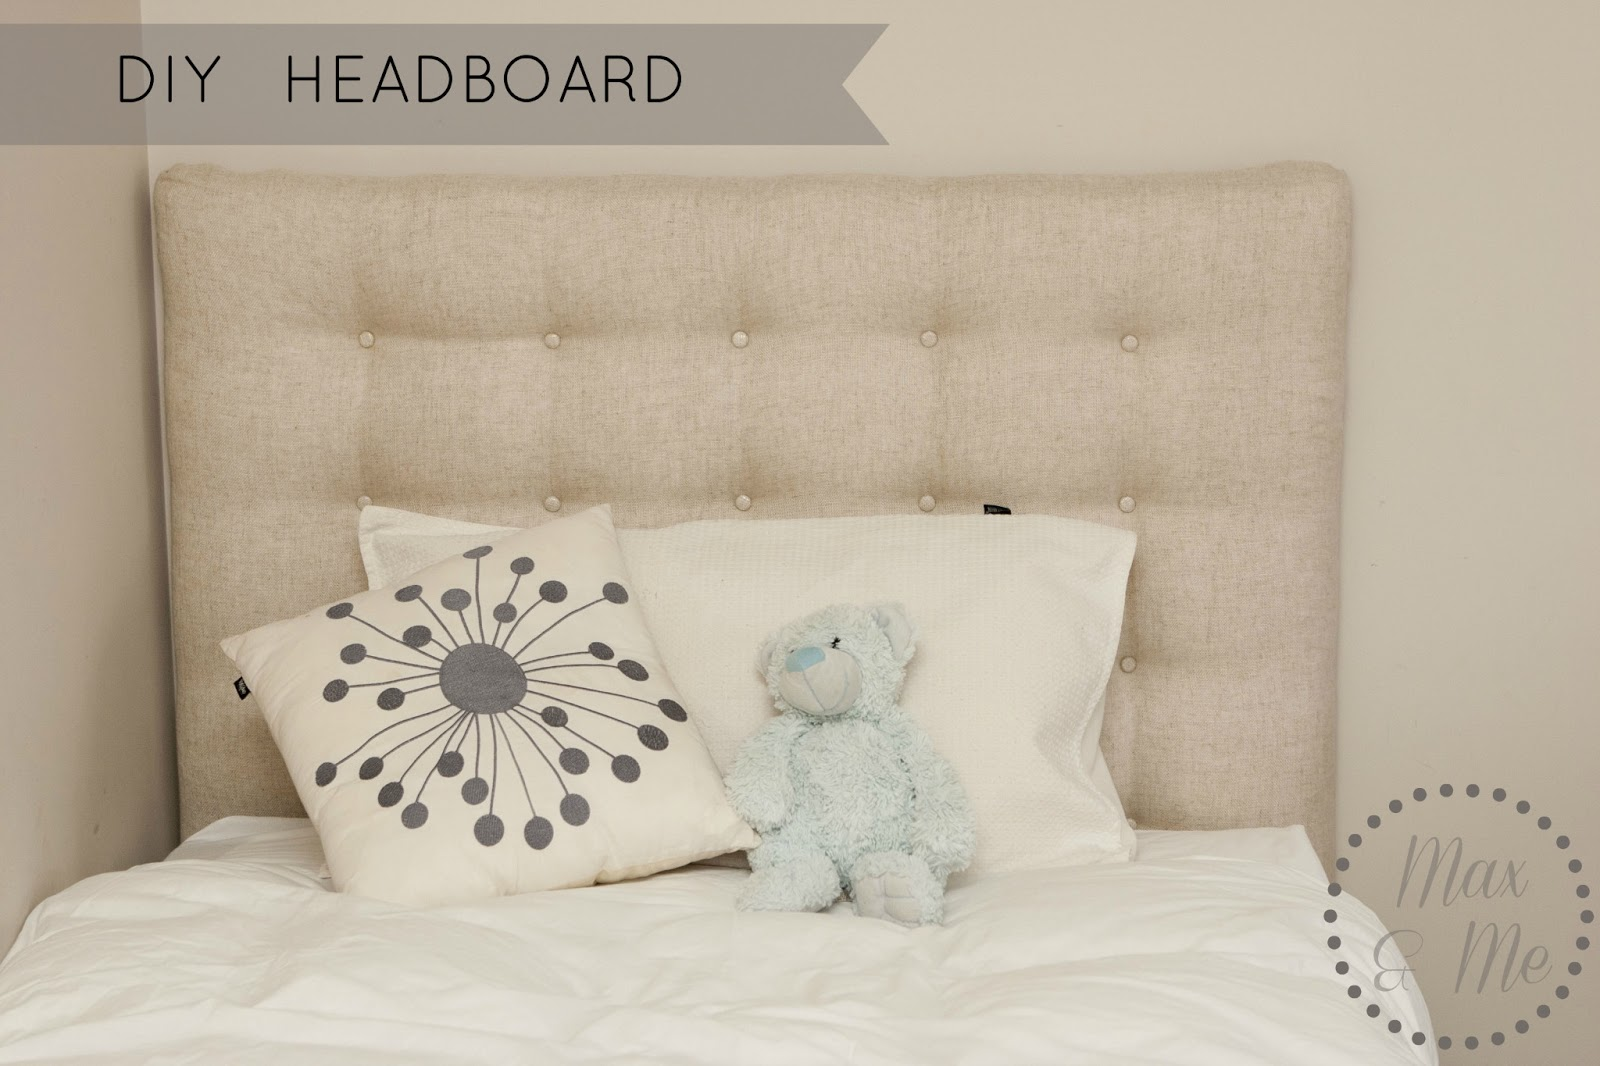 Max & Me: DIY Headboard and Bed Make-Over